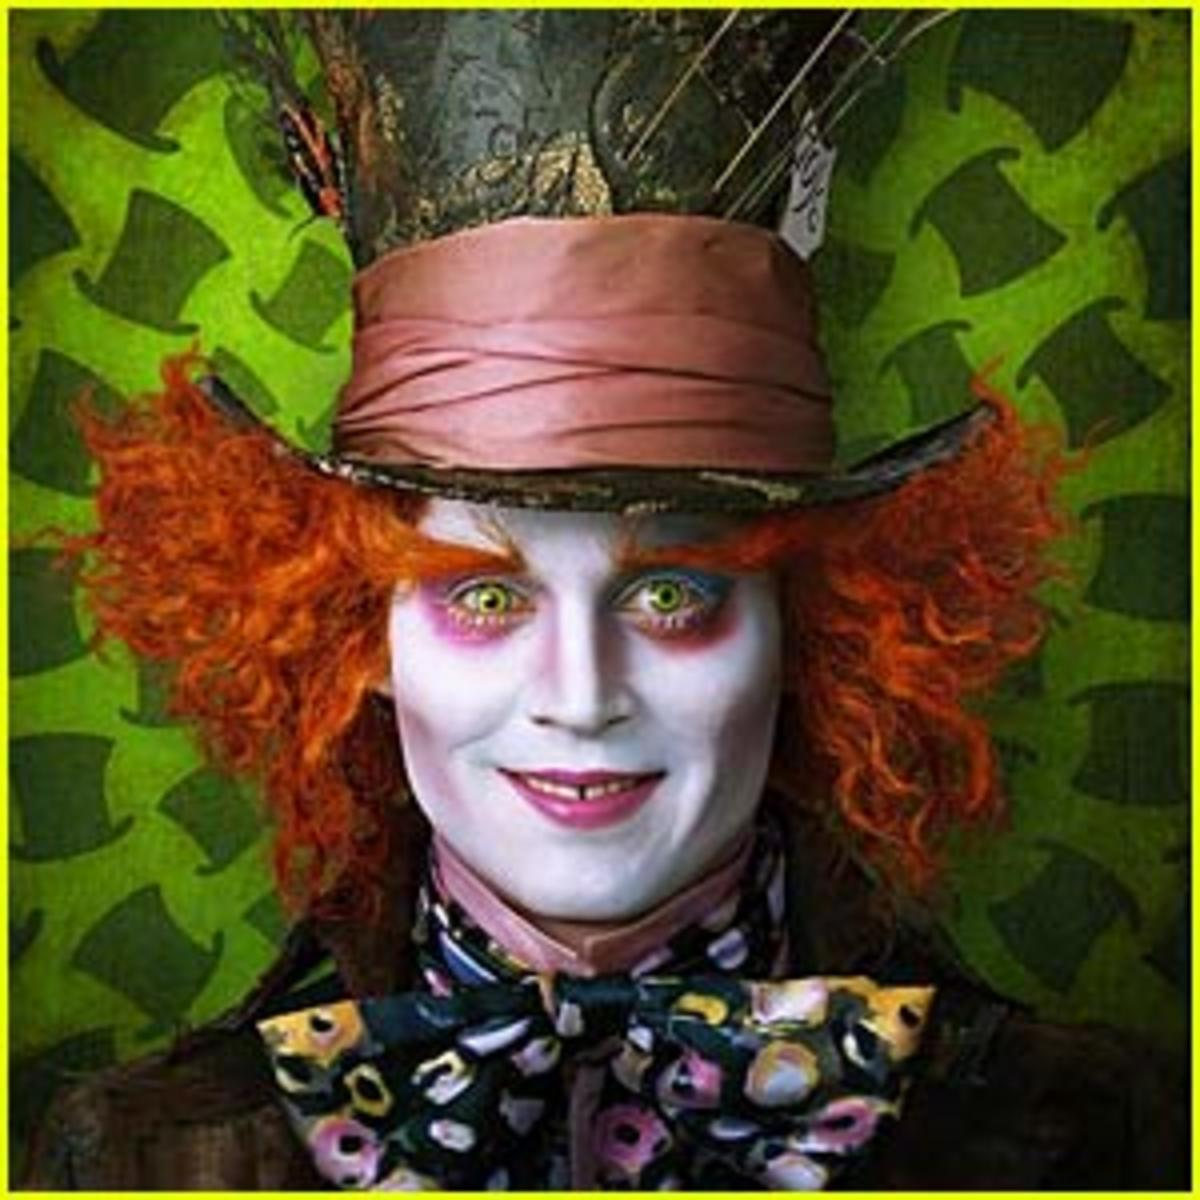 The Mad Hatter starring Johnny Depp